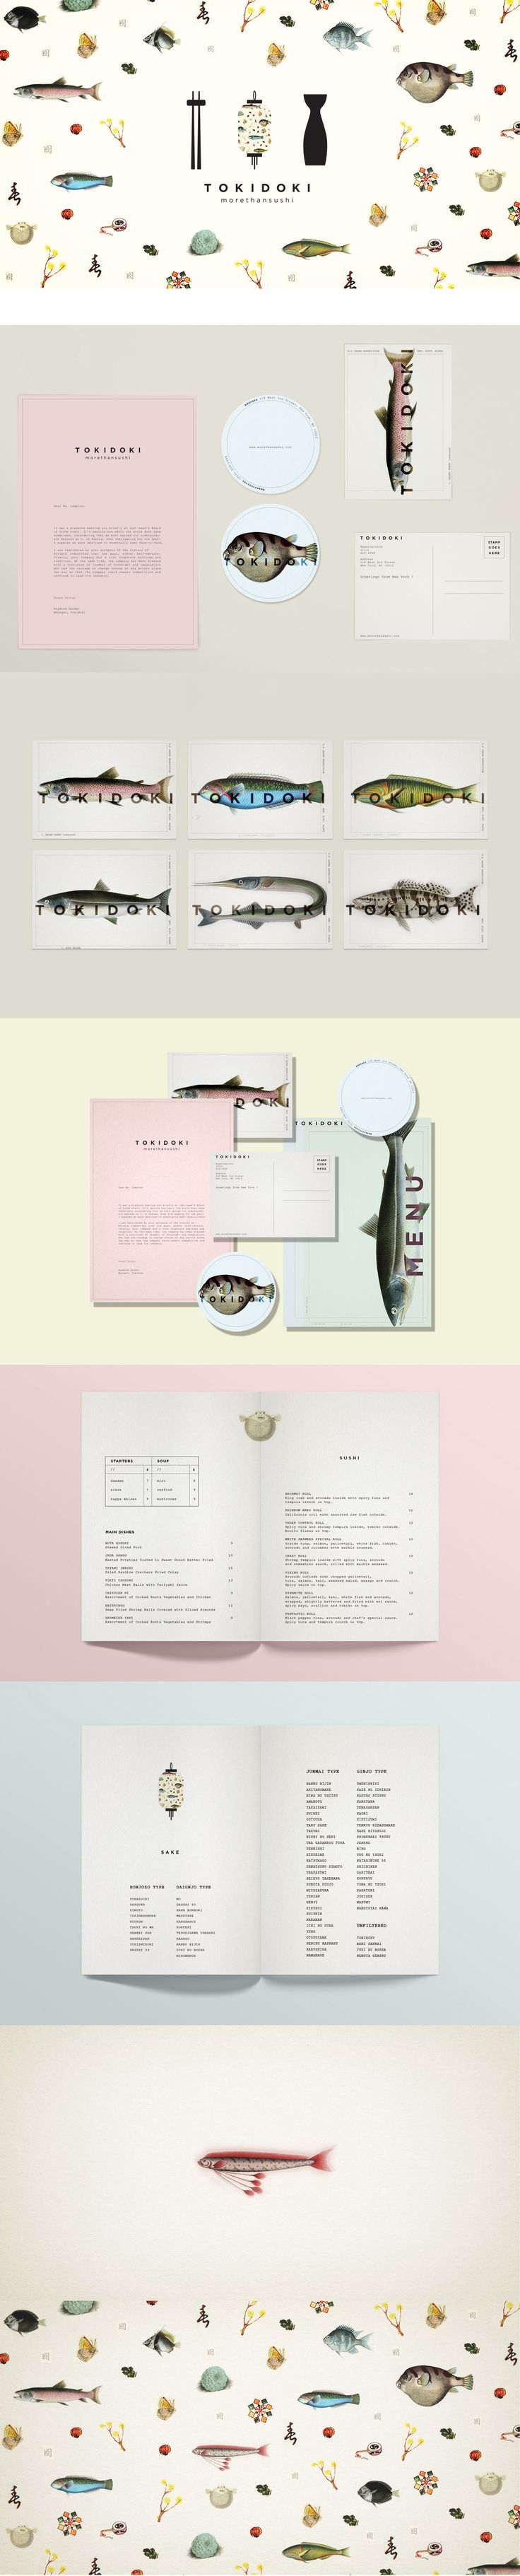 Branding, Art Direction & Graphic Design _Japanese Restaurant